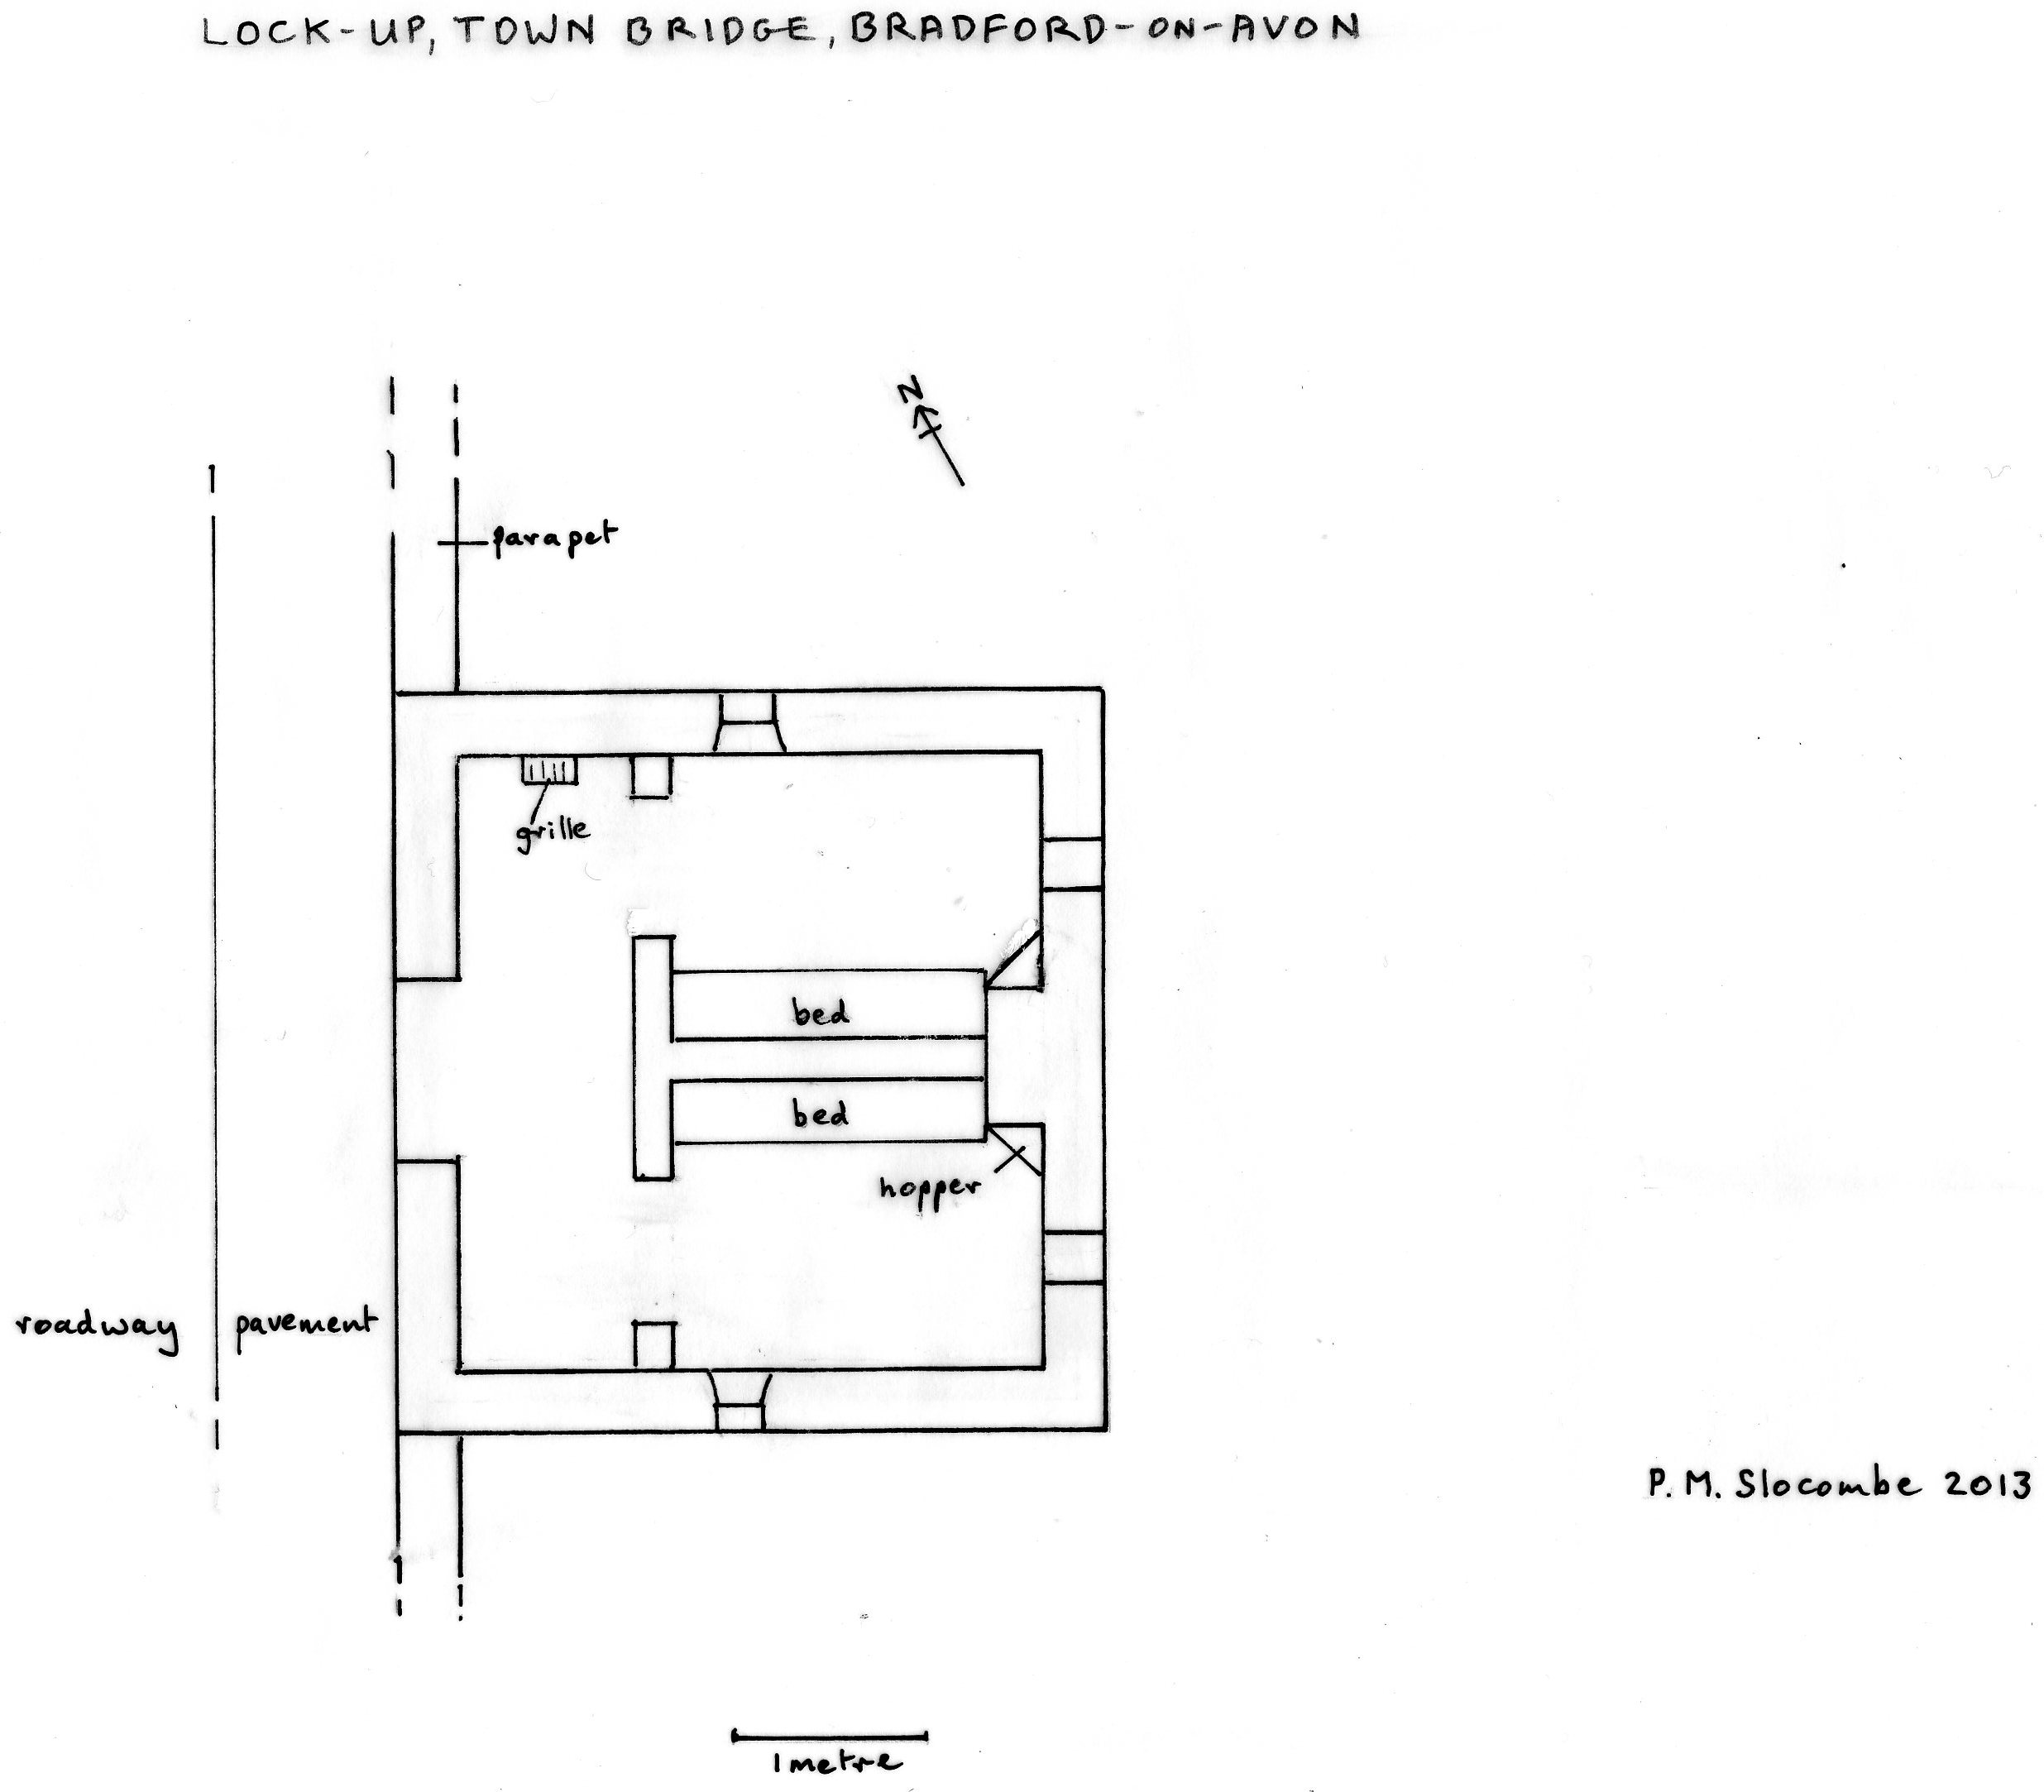 Plan (to scale) of the interior of the lock-up, showing the two cells, with position of the beds and hoppers (or toilets) with chute into the river. Drawn by P.M Slocombe, 2013.